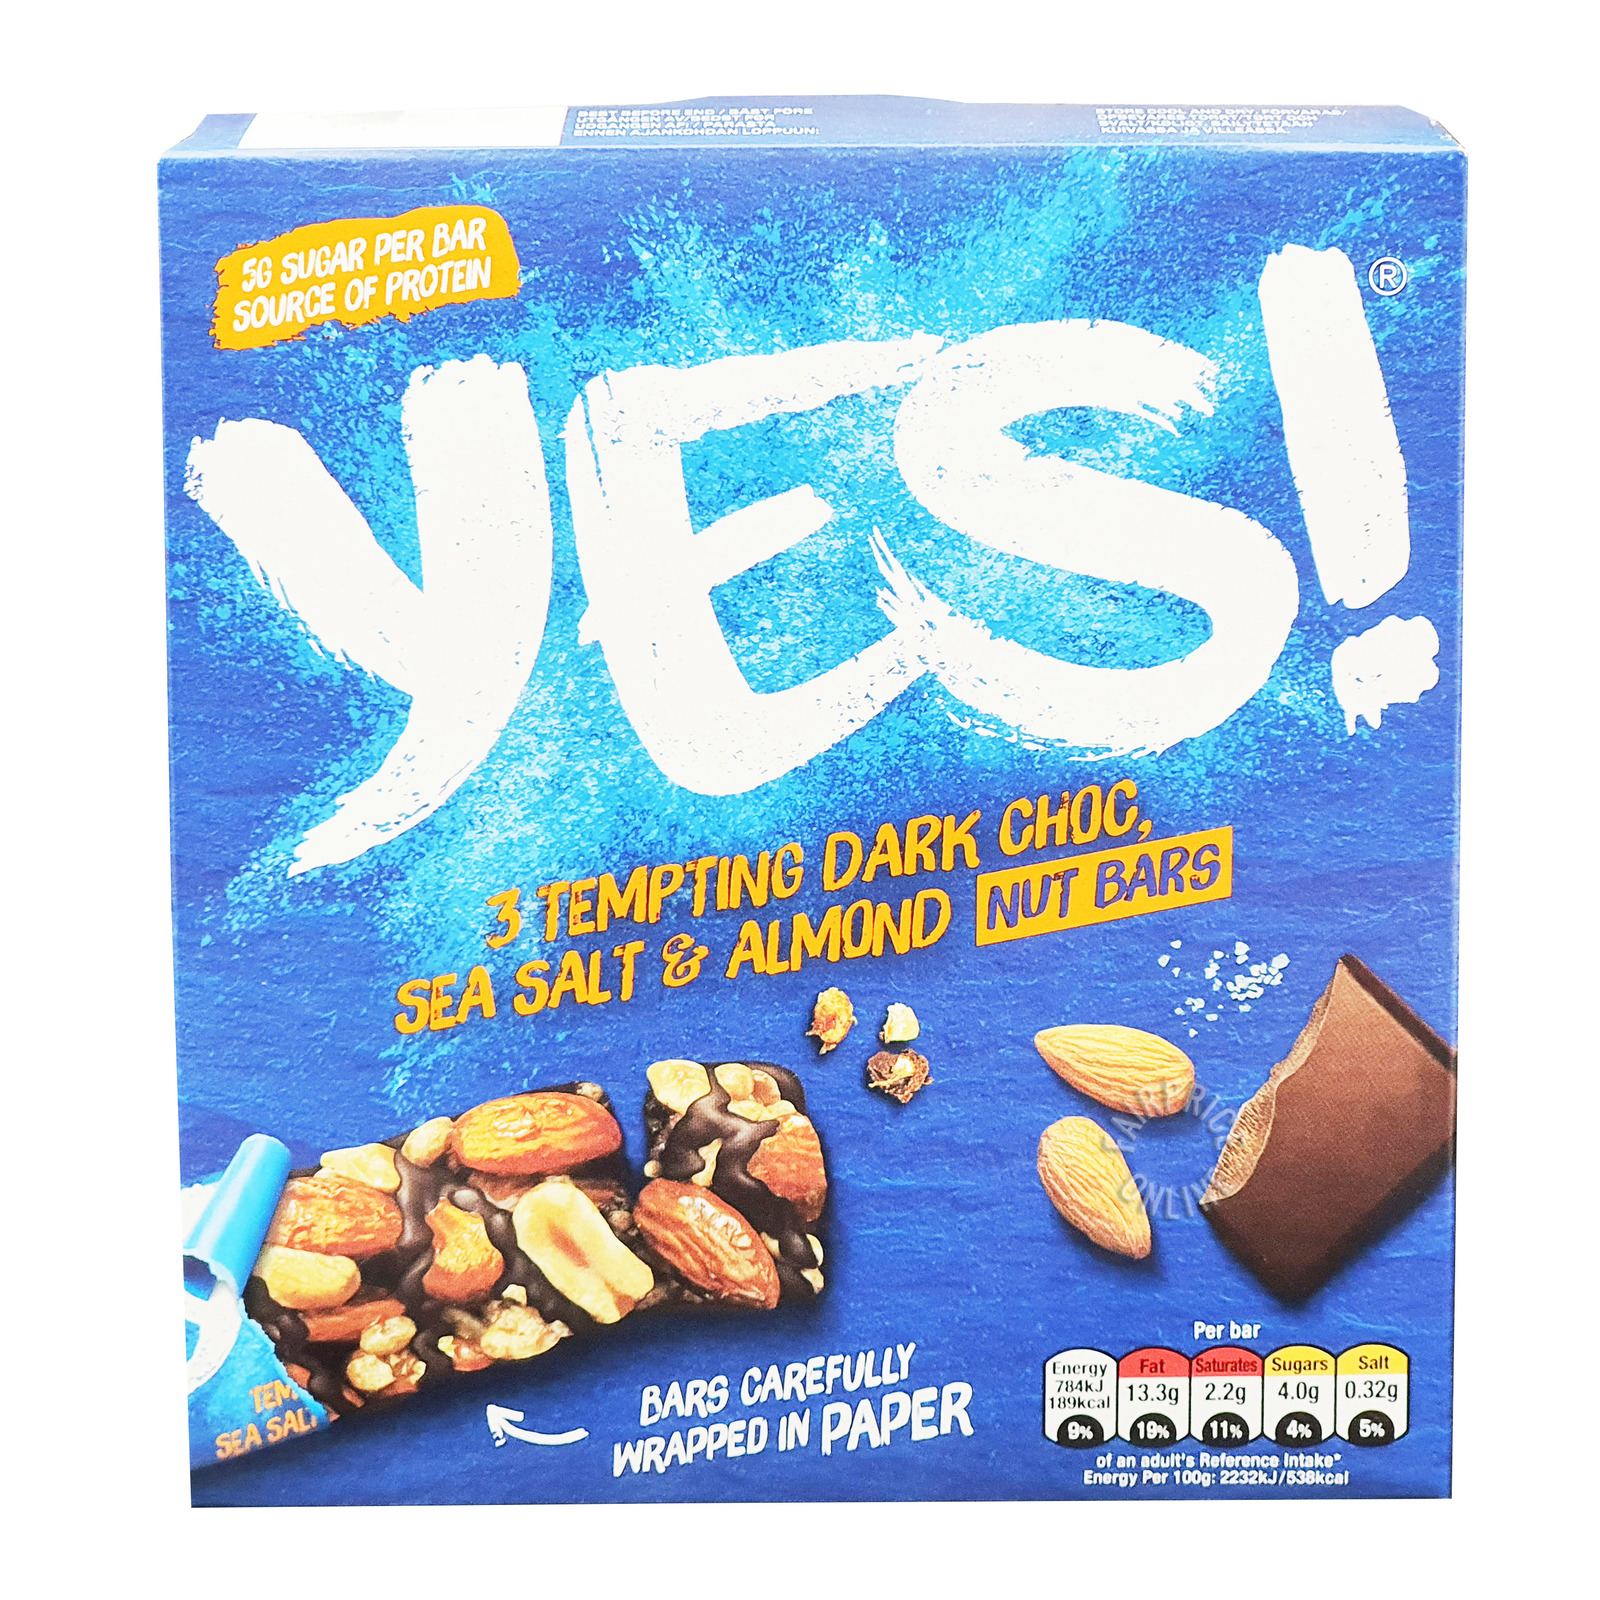 Yes! Nut Bars - Dark Choc, Sea Salt & Almond